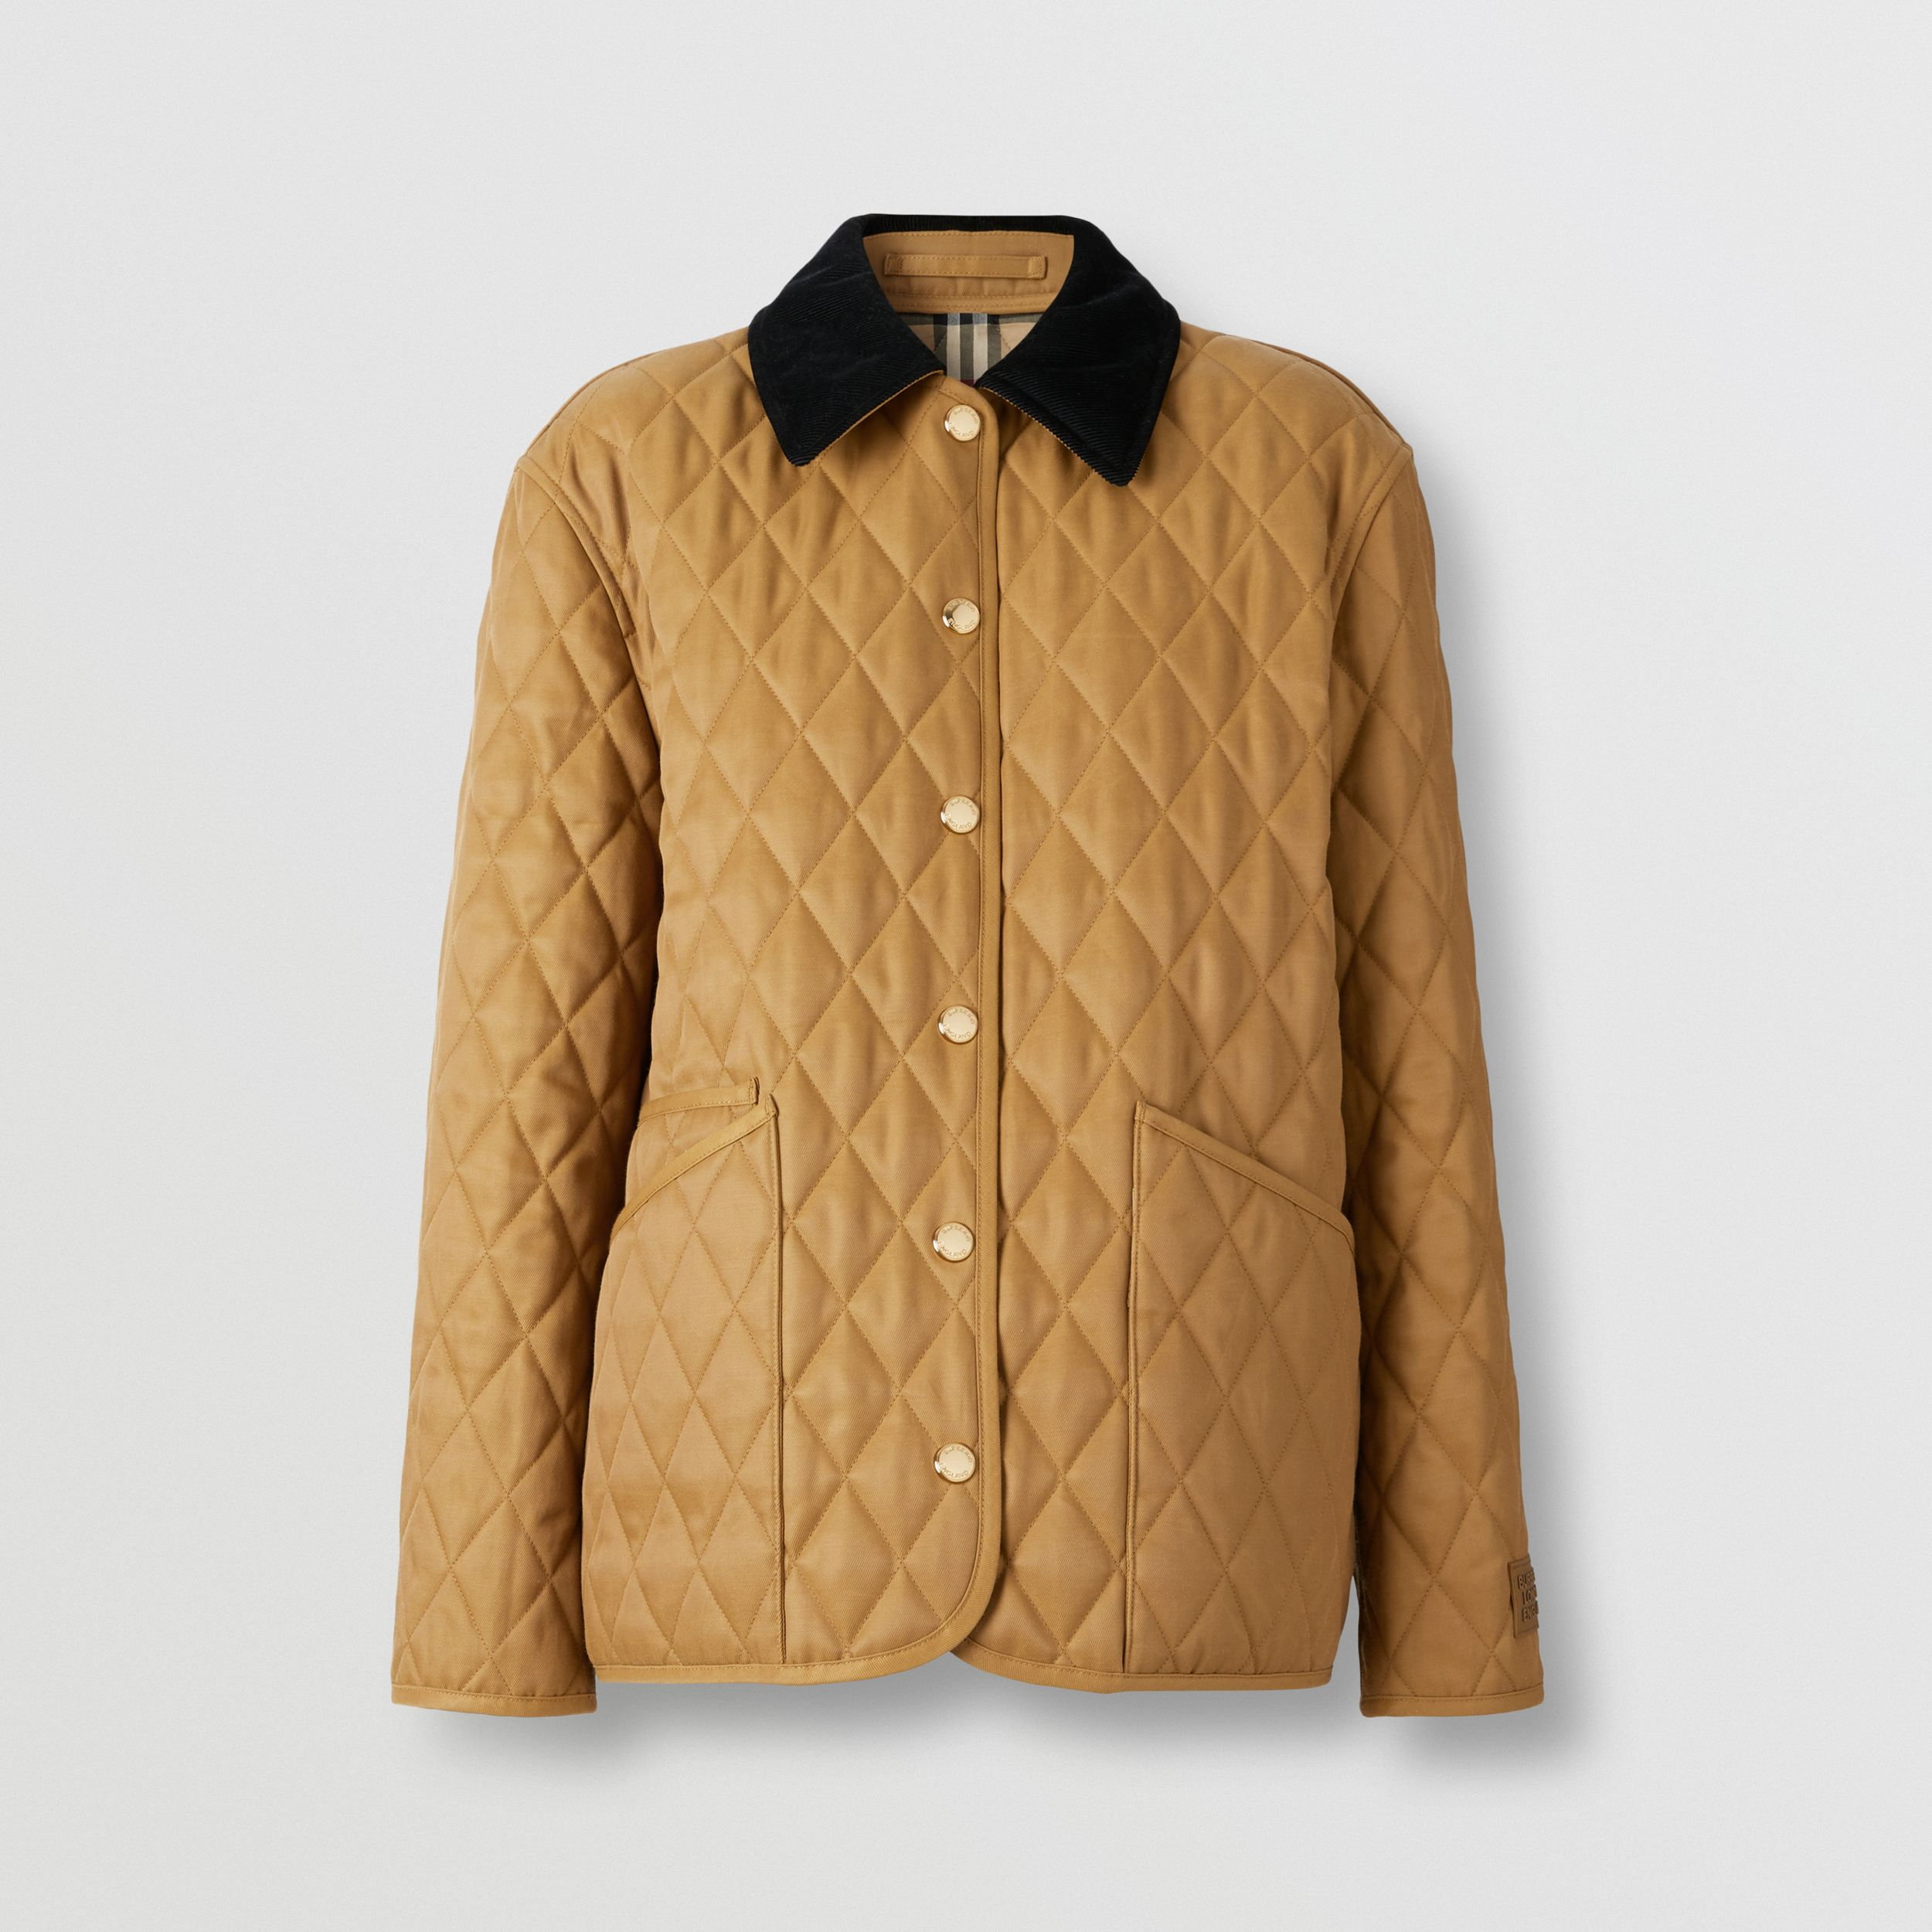 Corduroy Collar Diamond Quilted Jacket in Camel - Women | Burberry - 4